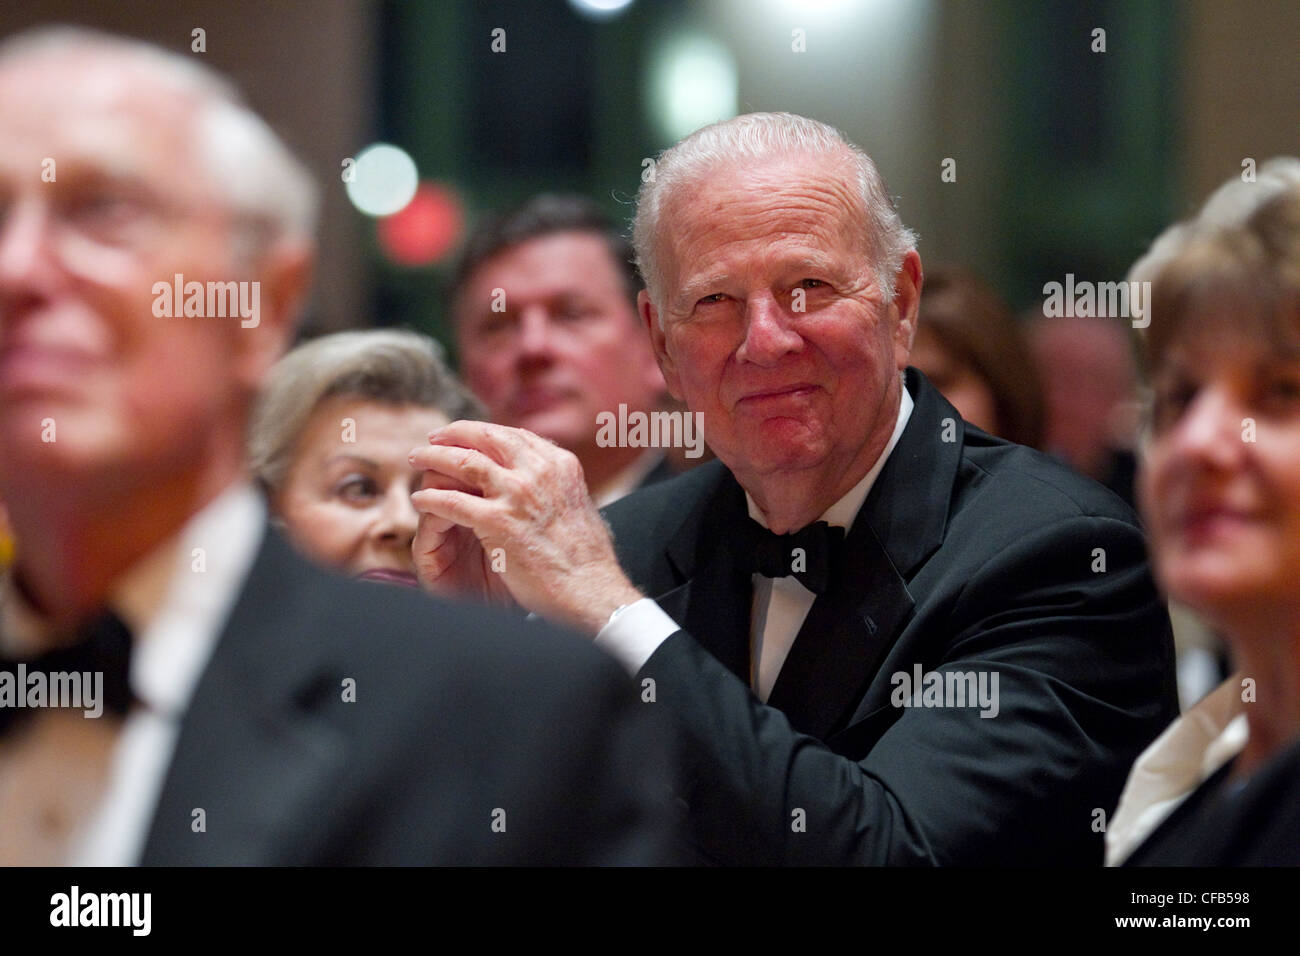 James A. Baker III of Houston diplomat & statesman who served under three US presidents honored as legendary - Stock Image